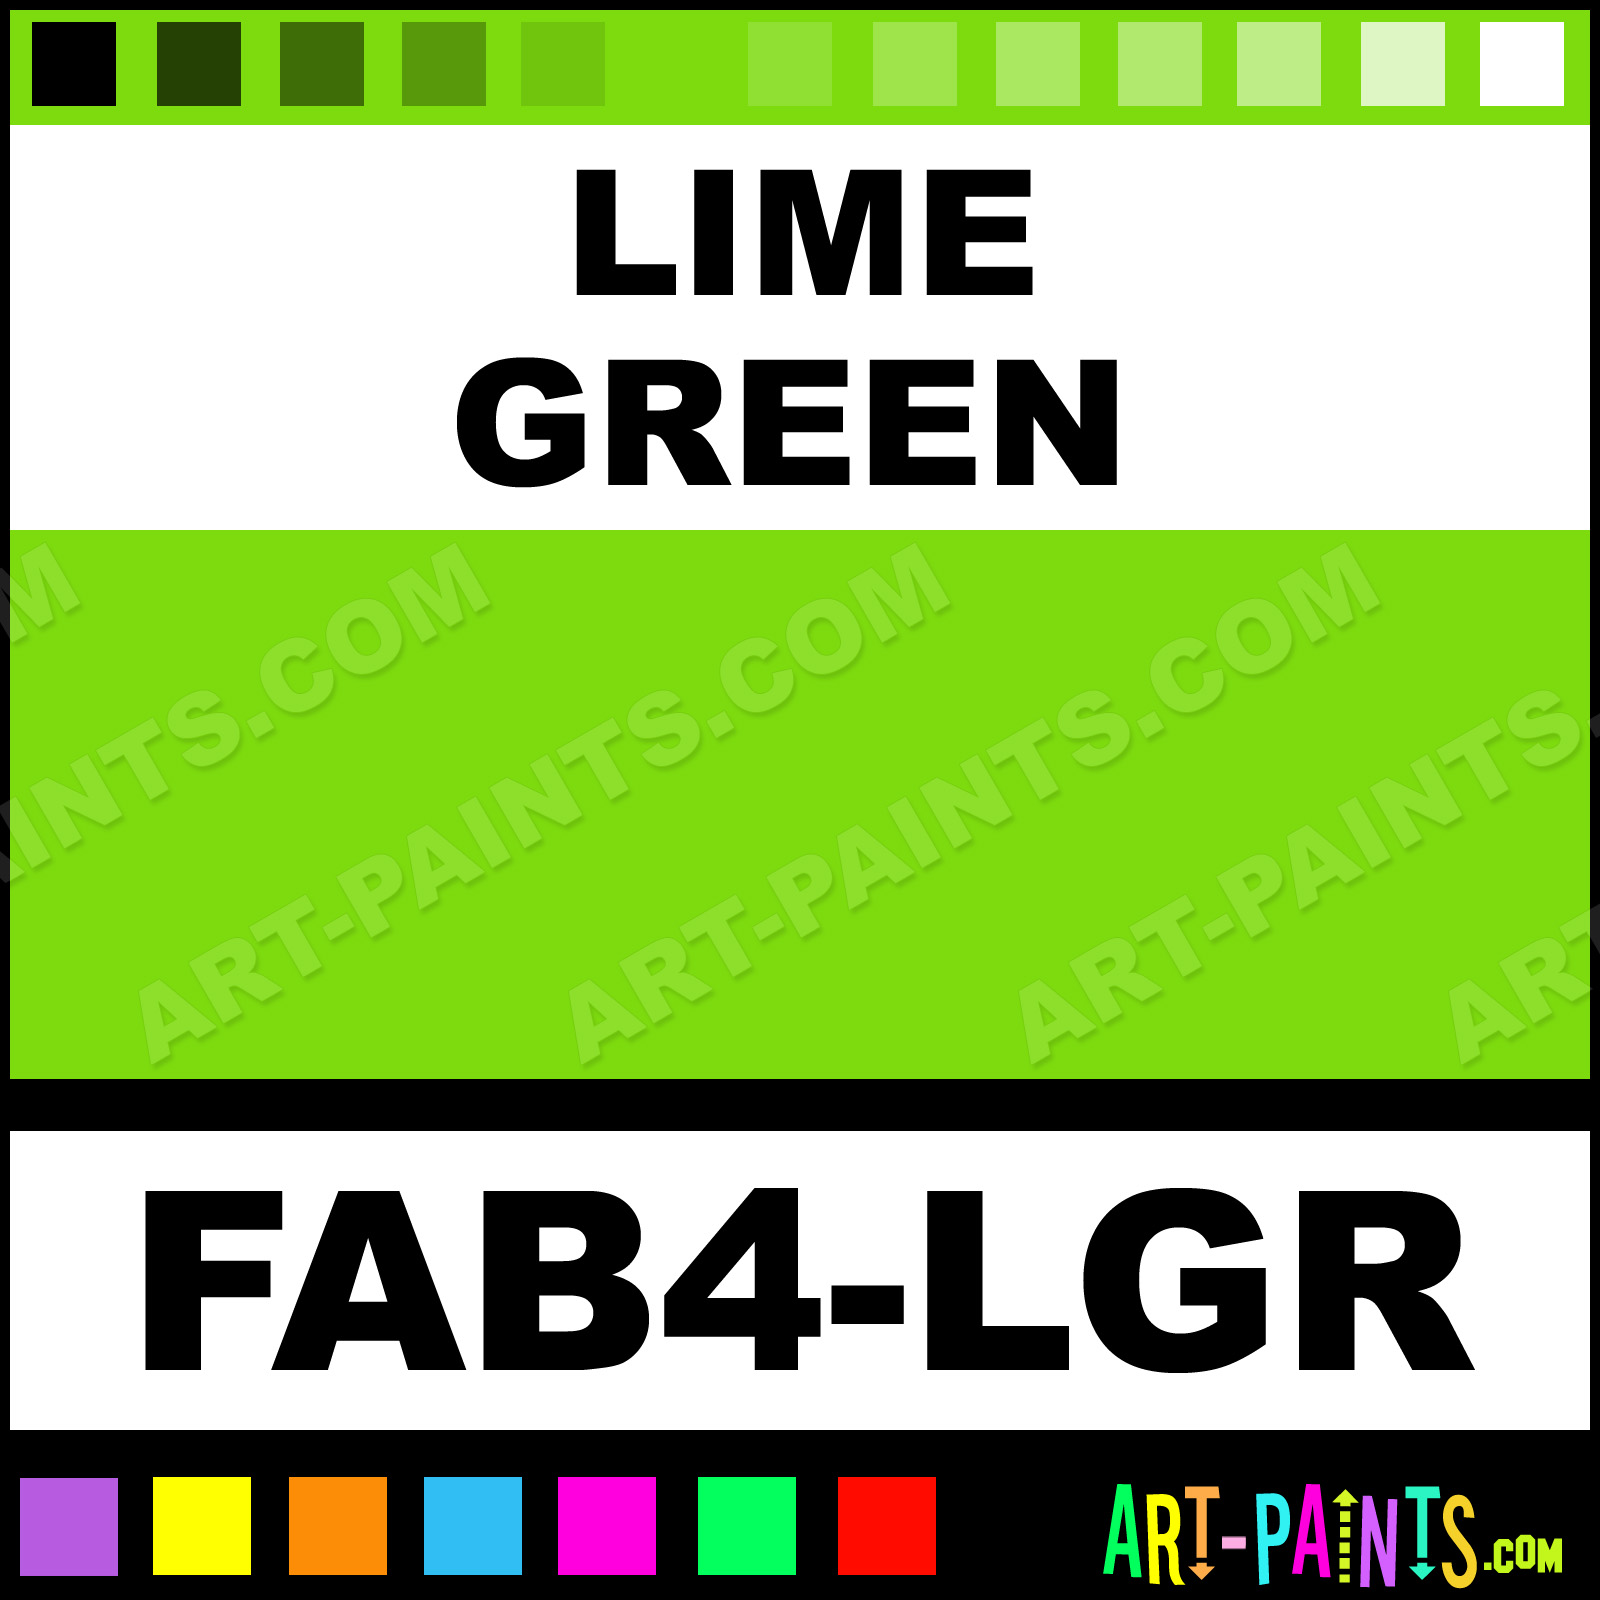 lime green paint body face paints - fab4-lgr - lime green paint